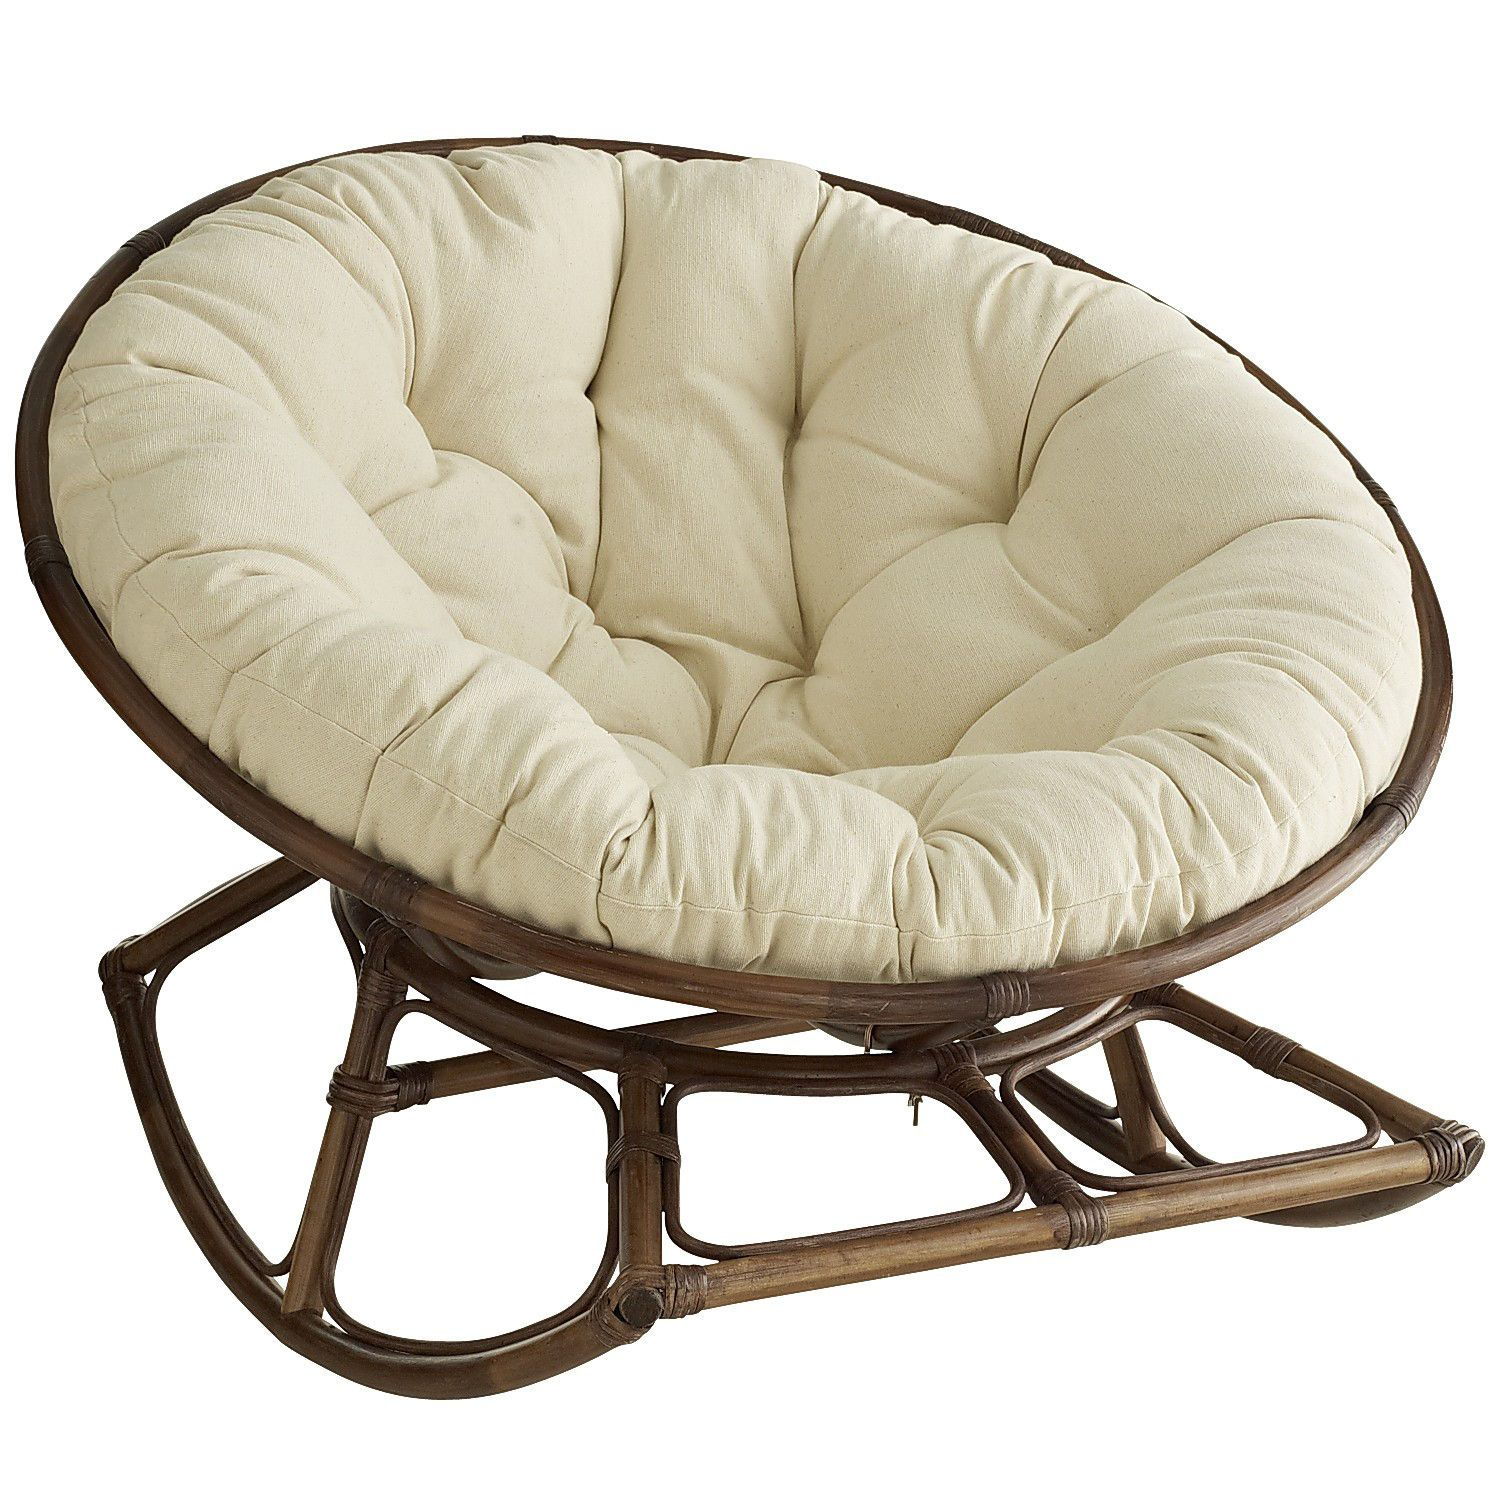 Comfortable bedroom chair - Rockasan Chair Brown The Hunt For Comfortable Reading Chairs Begins